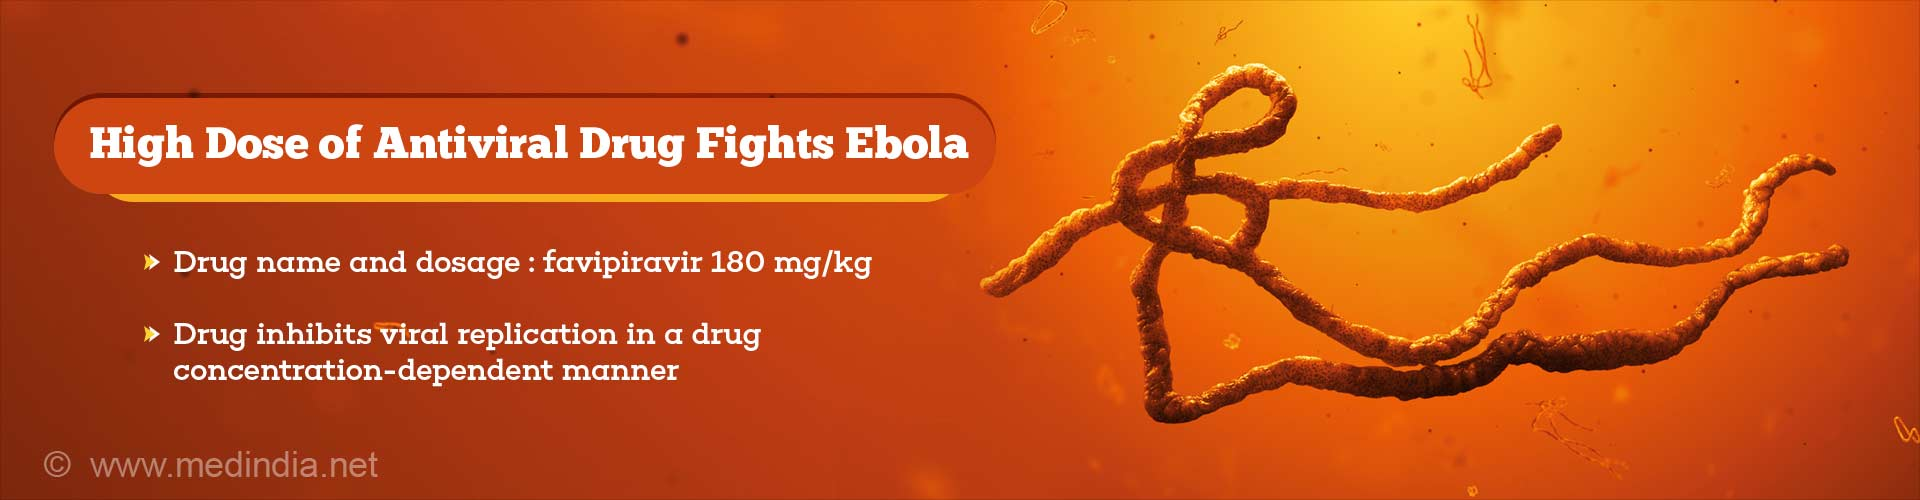 Ebola-Related Deaths Fell When Treated With High Dose of Antiviral Drug